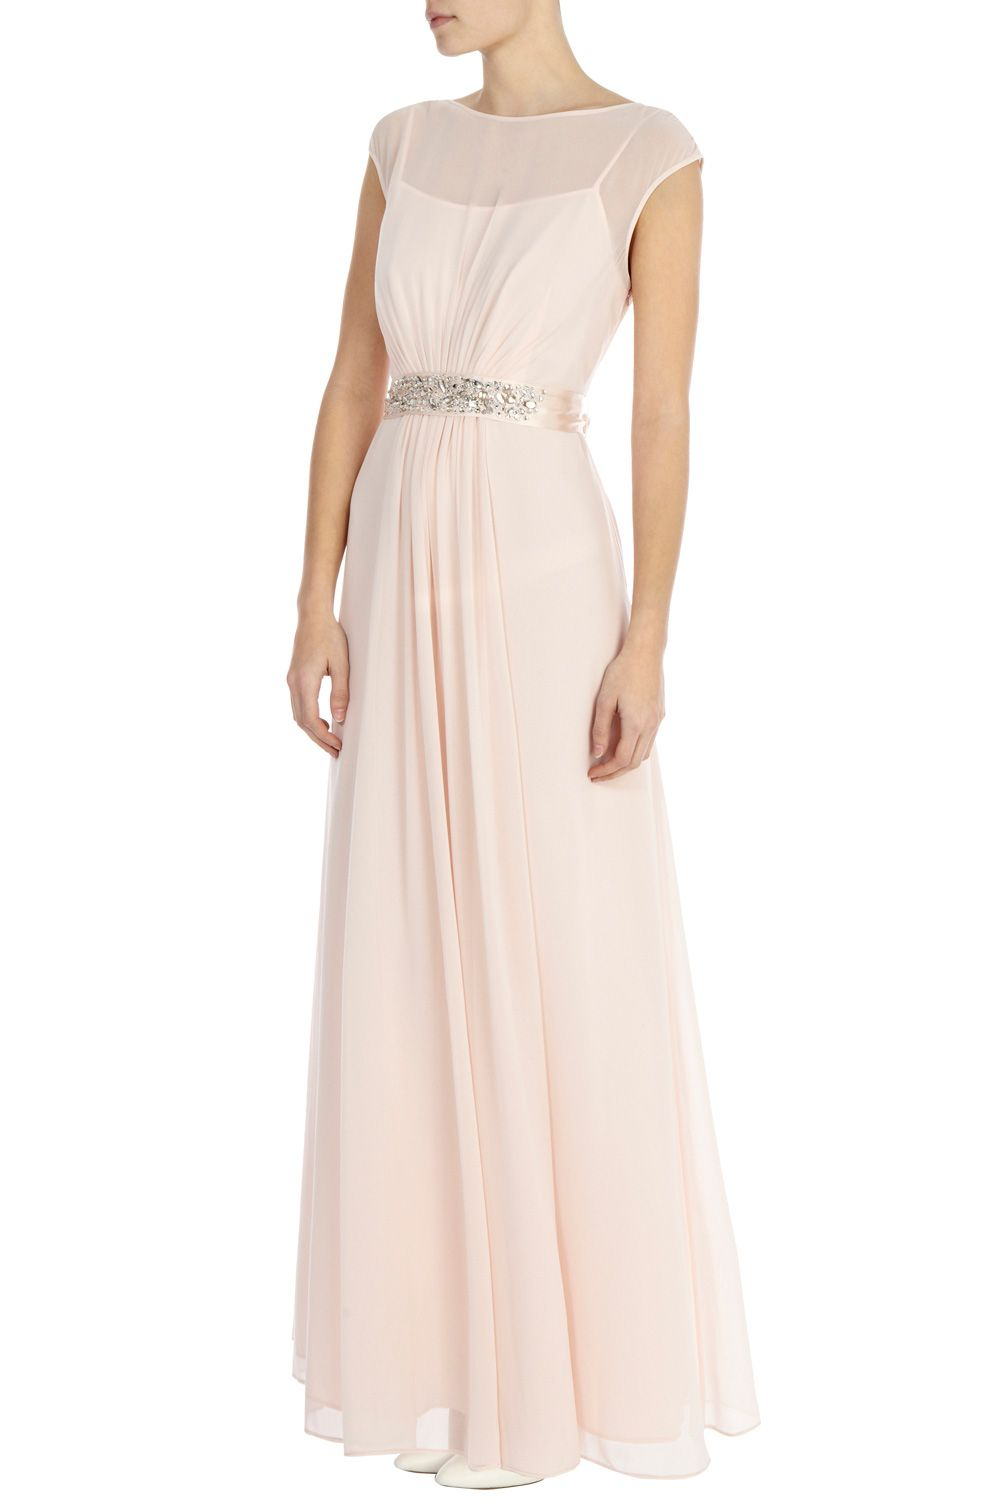 Lori lee maxi dress